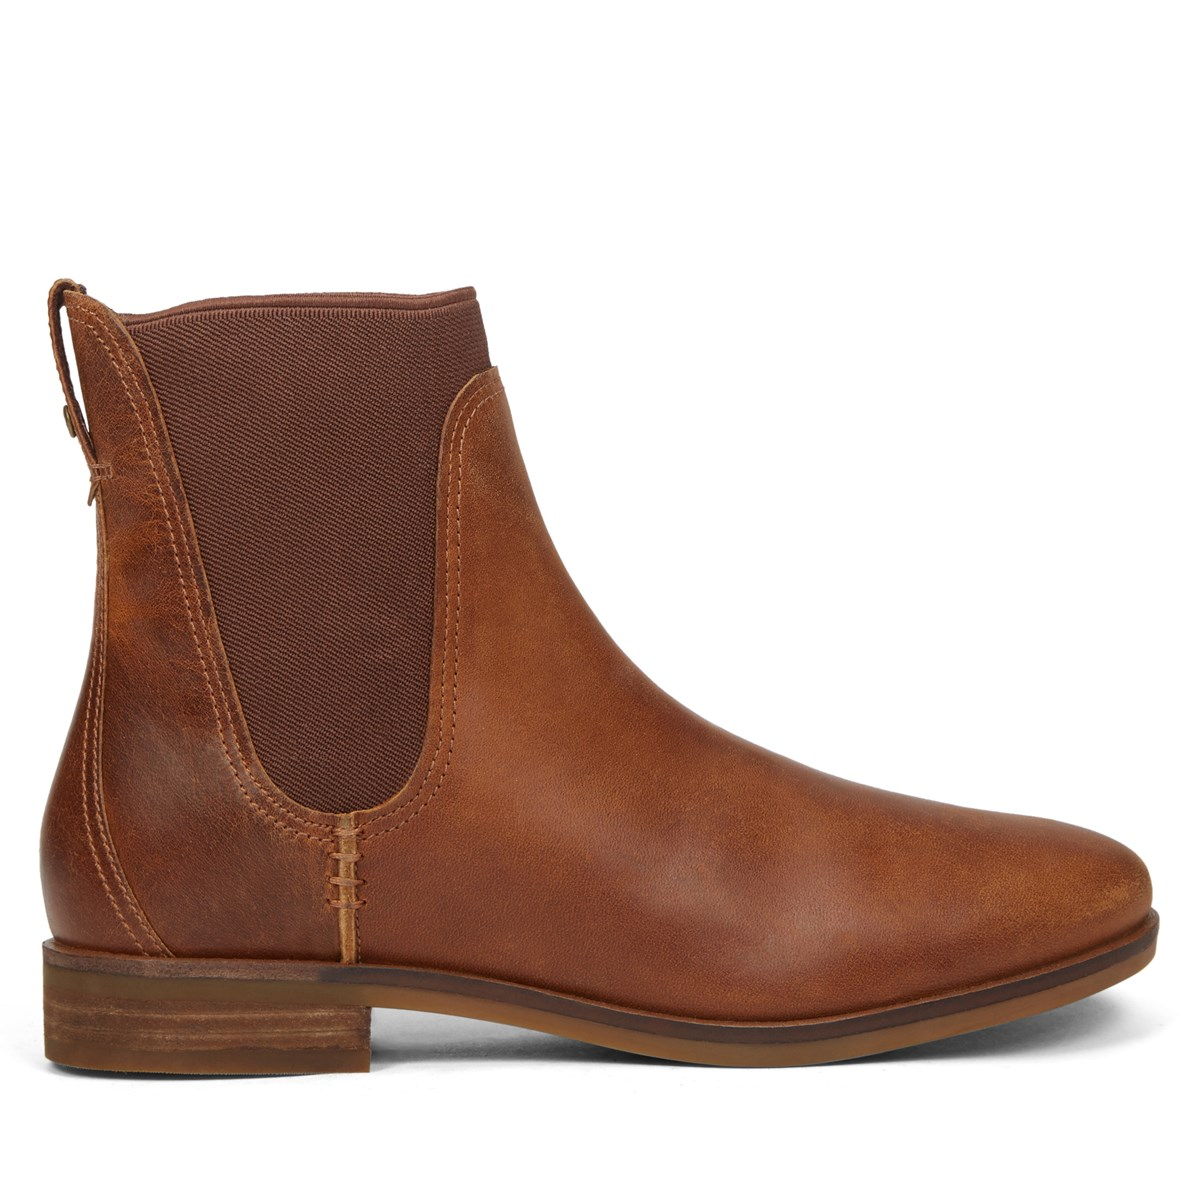 Women's Somers Fall Brown Chelsea Boots